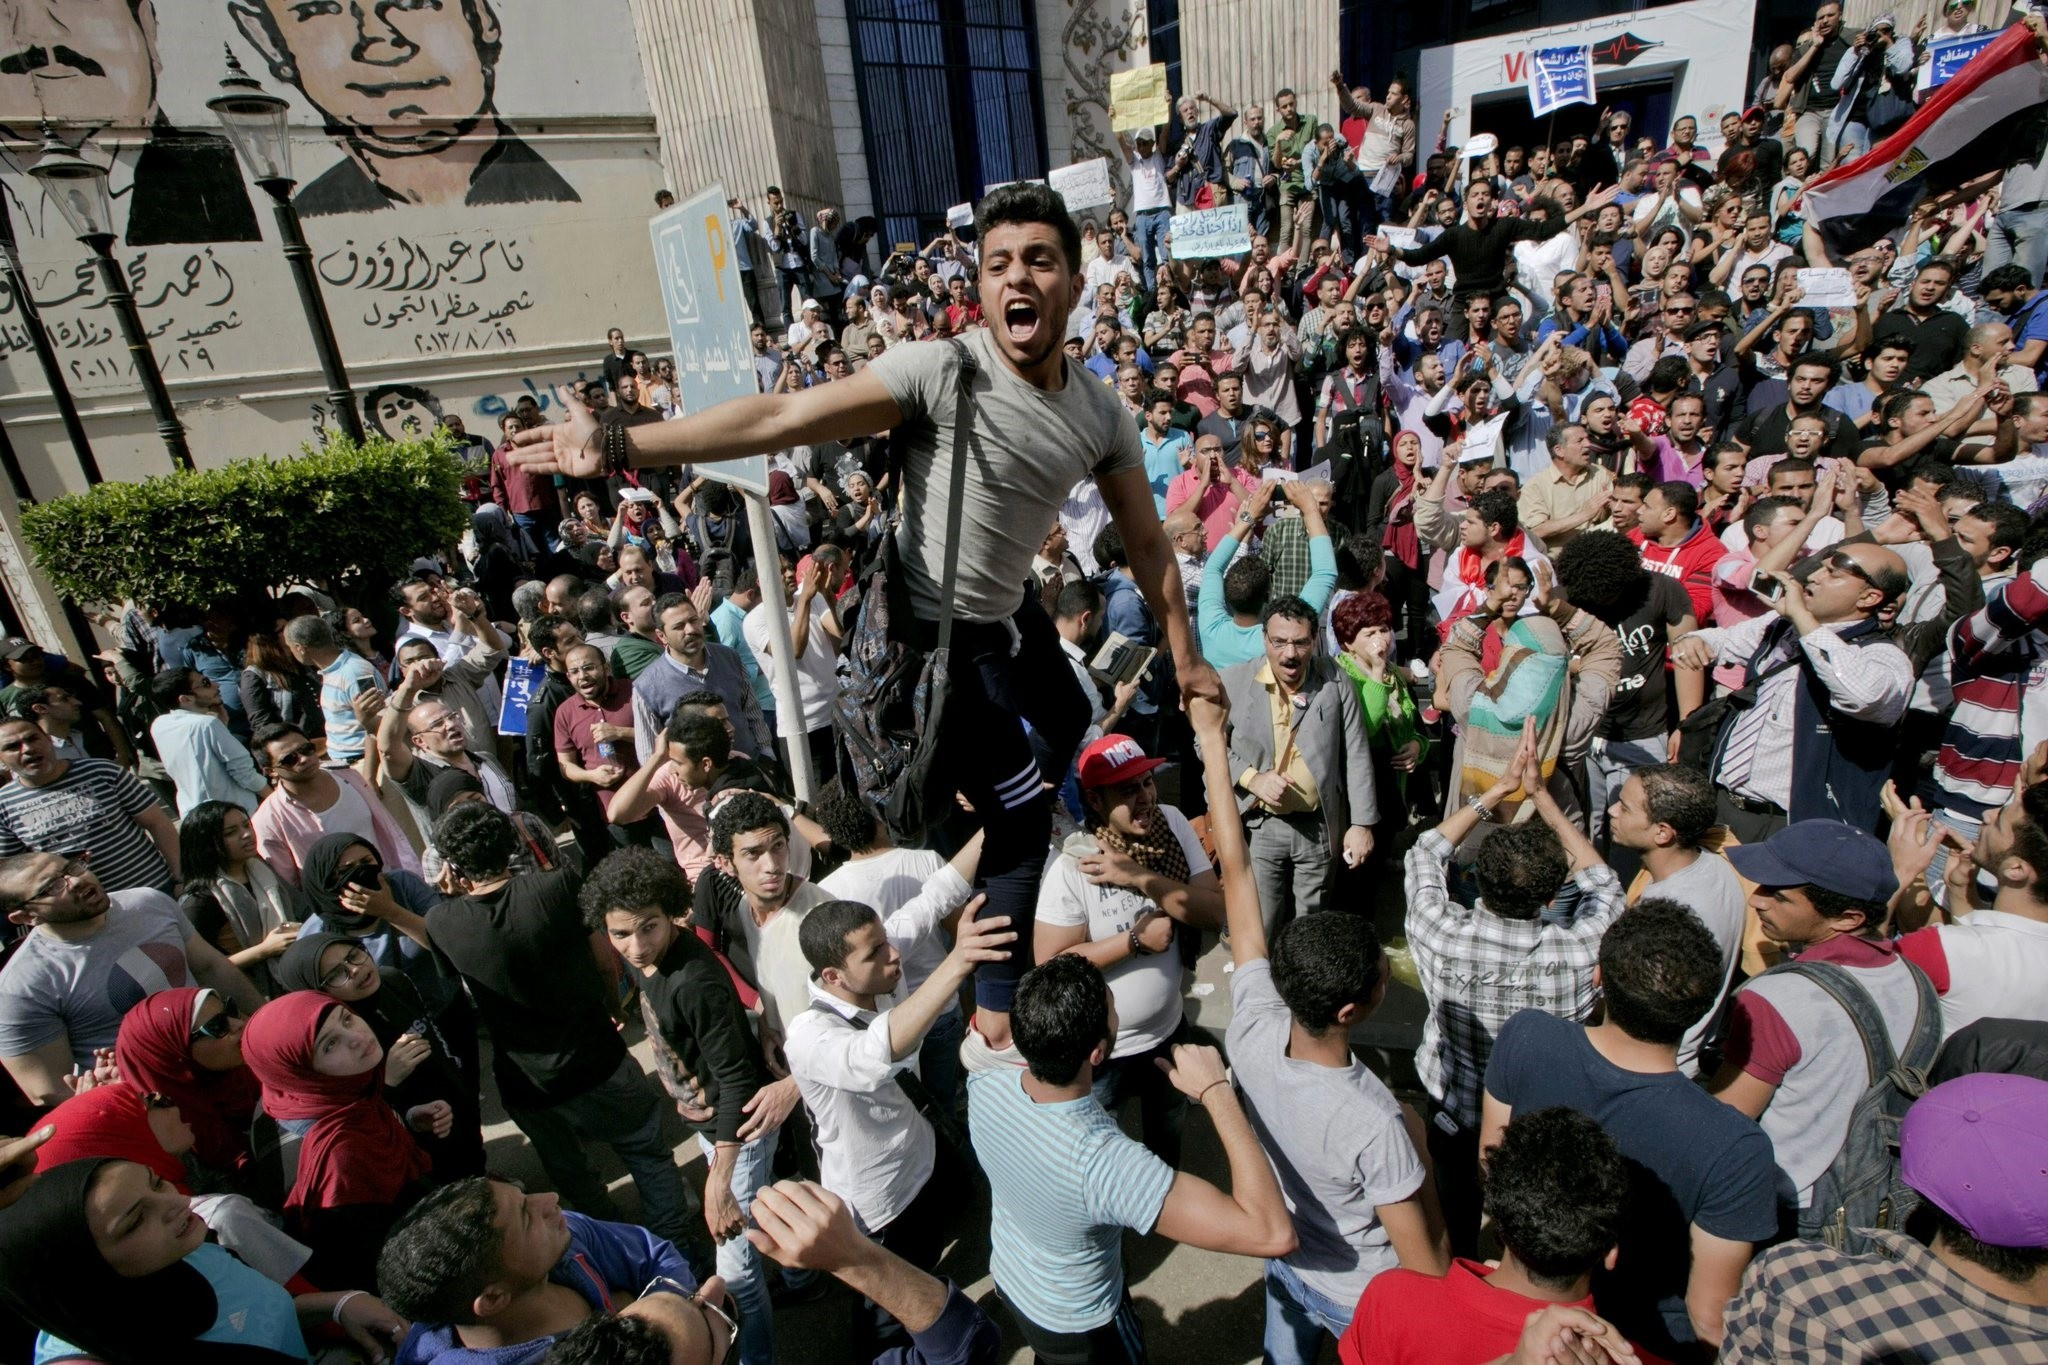 Egyptians shout slogans against President el-Sissi during a protest against the decision to hand over control of two strategic Red Sea islands to Saudi Arabia in front of the Press Syndicate, in Cairo, Egypt. (AP Photo)